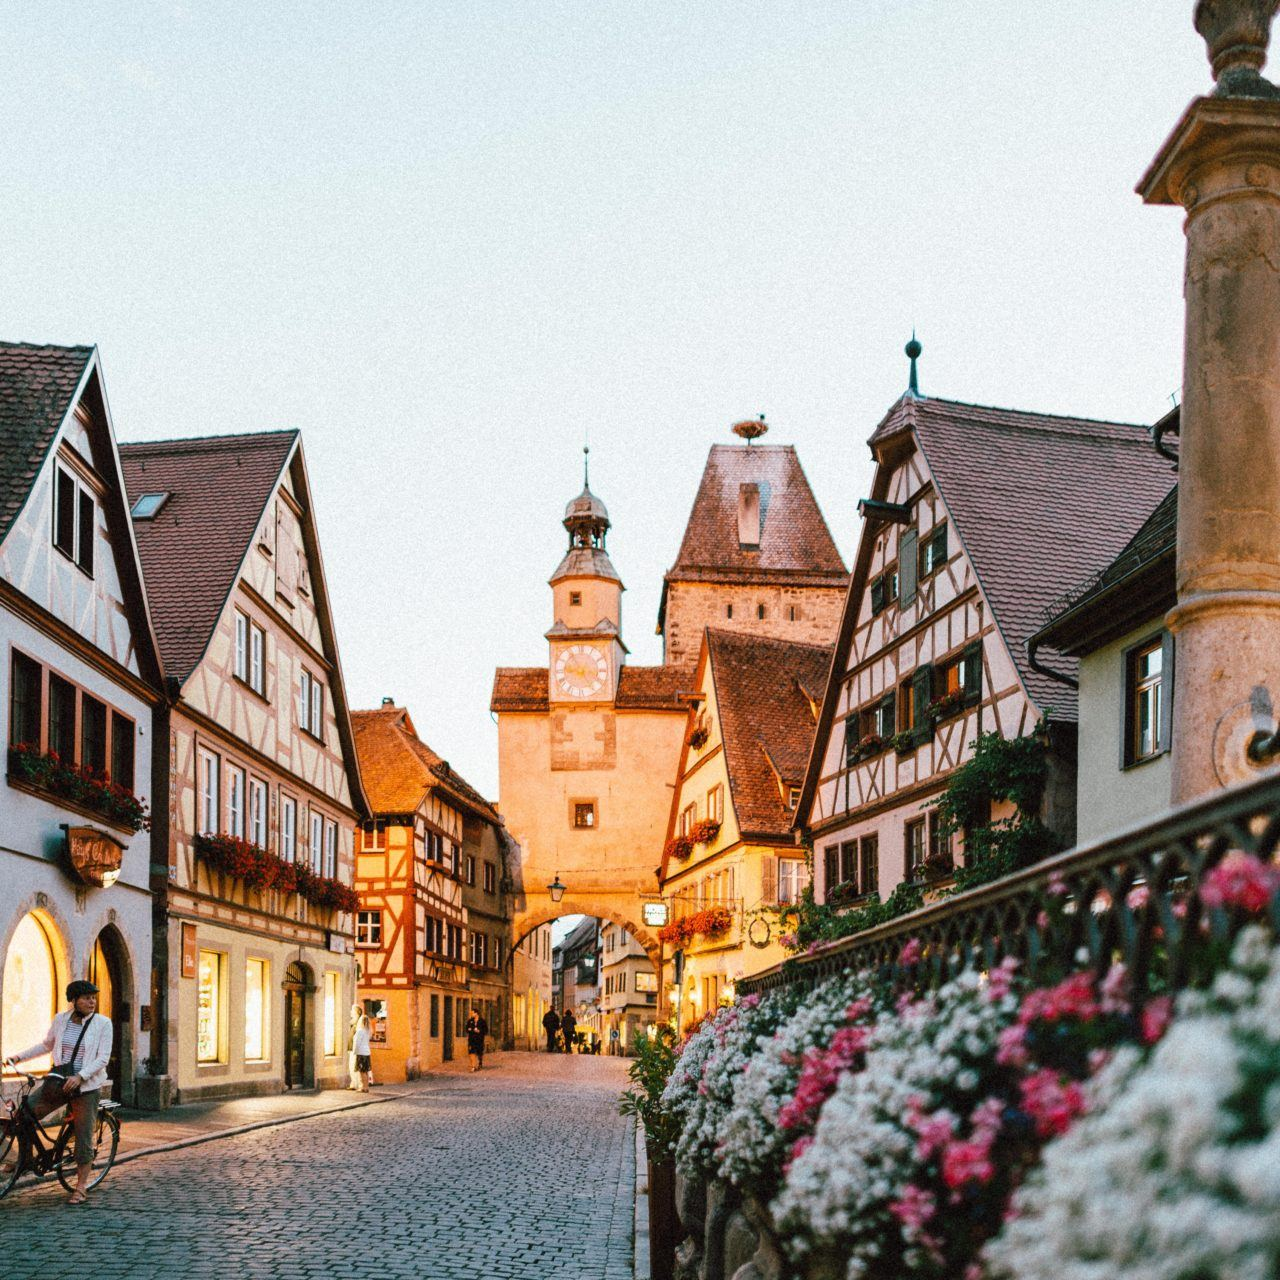 Bavarian street, Germany